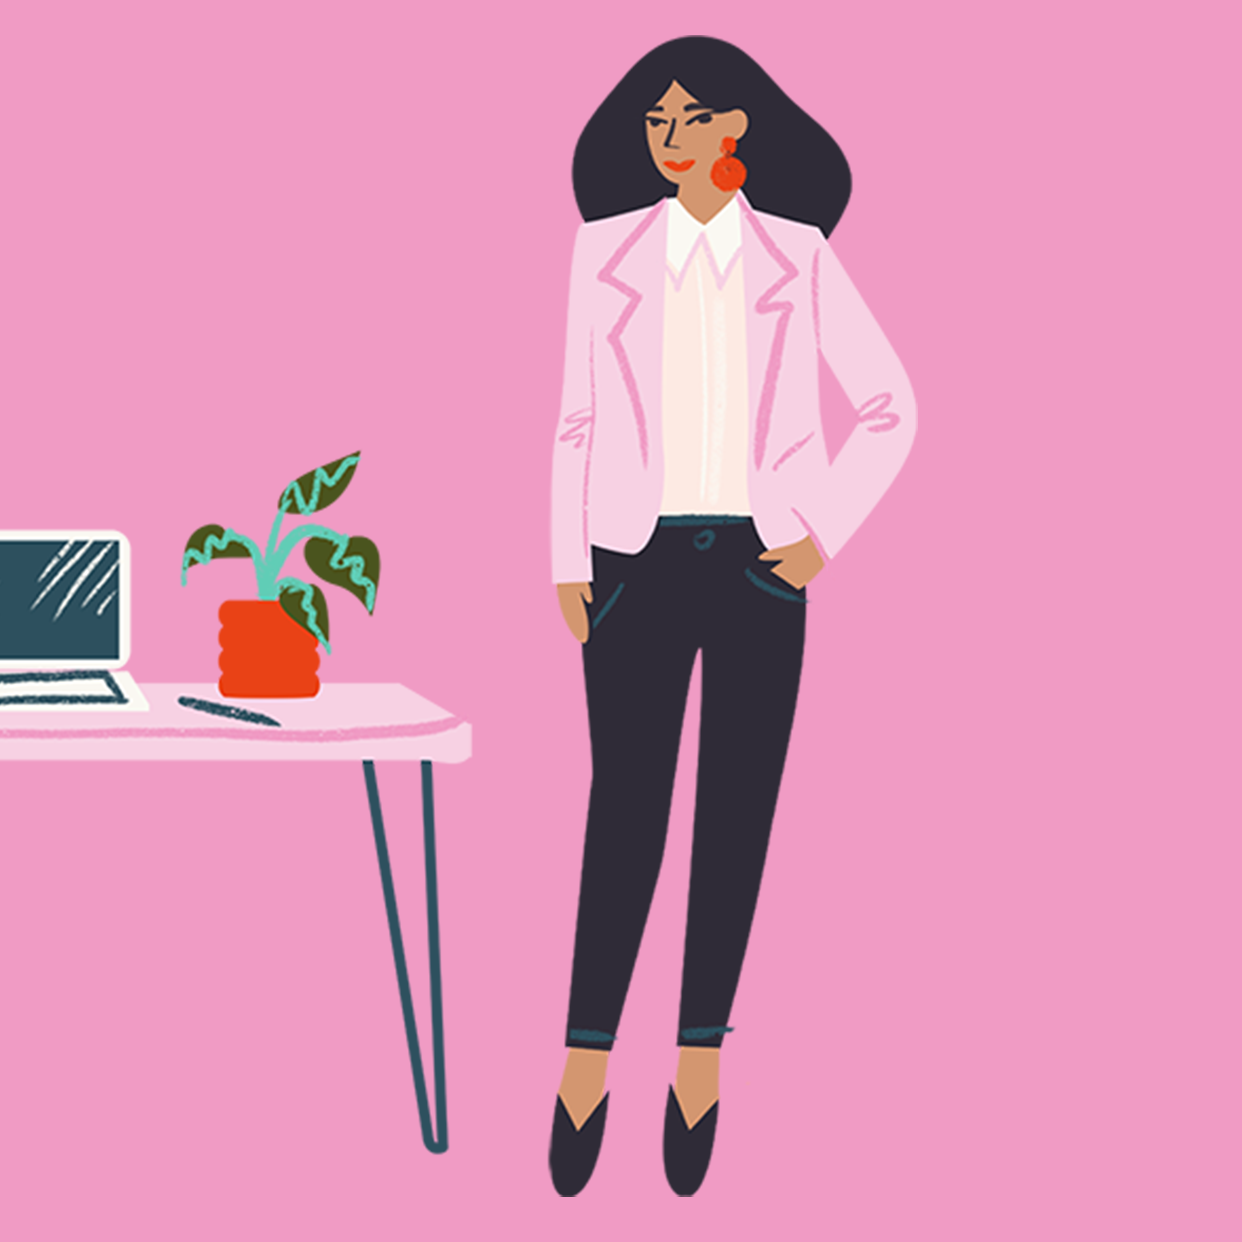 Illustration of a woman standing by a desk